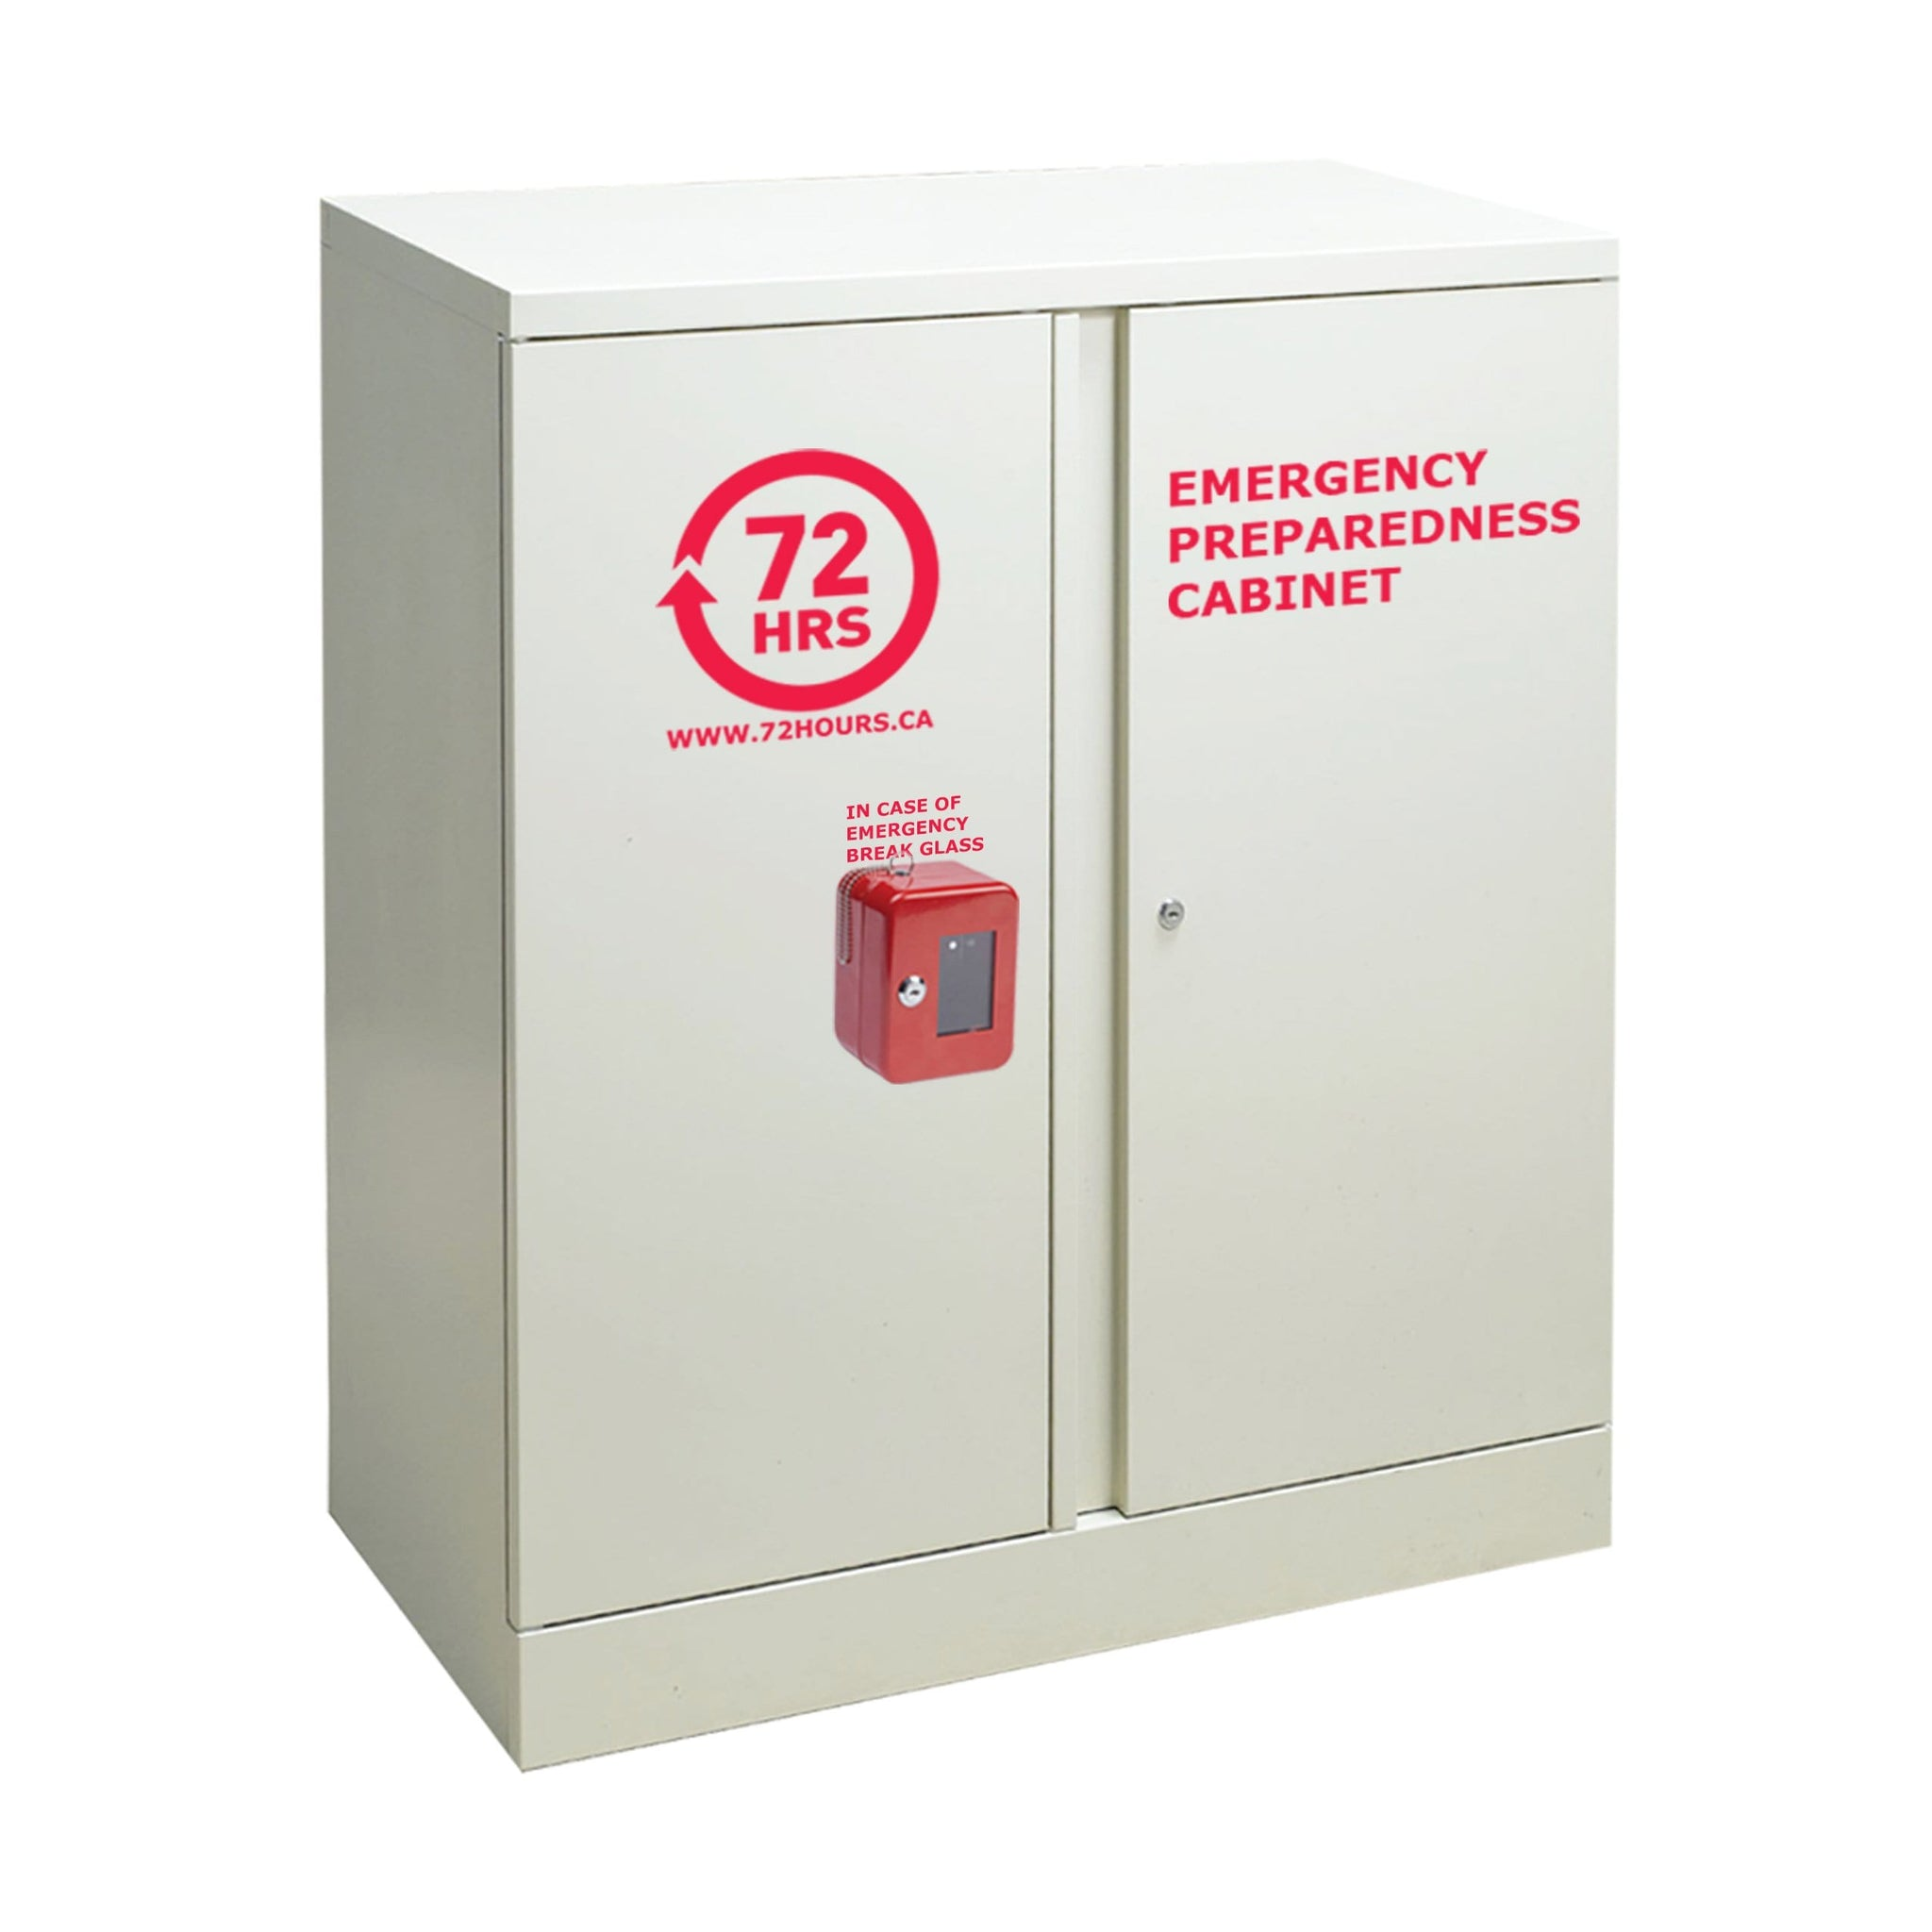 "72 HOURS 40"" Grey Storage Emergency Cabinet"